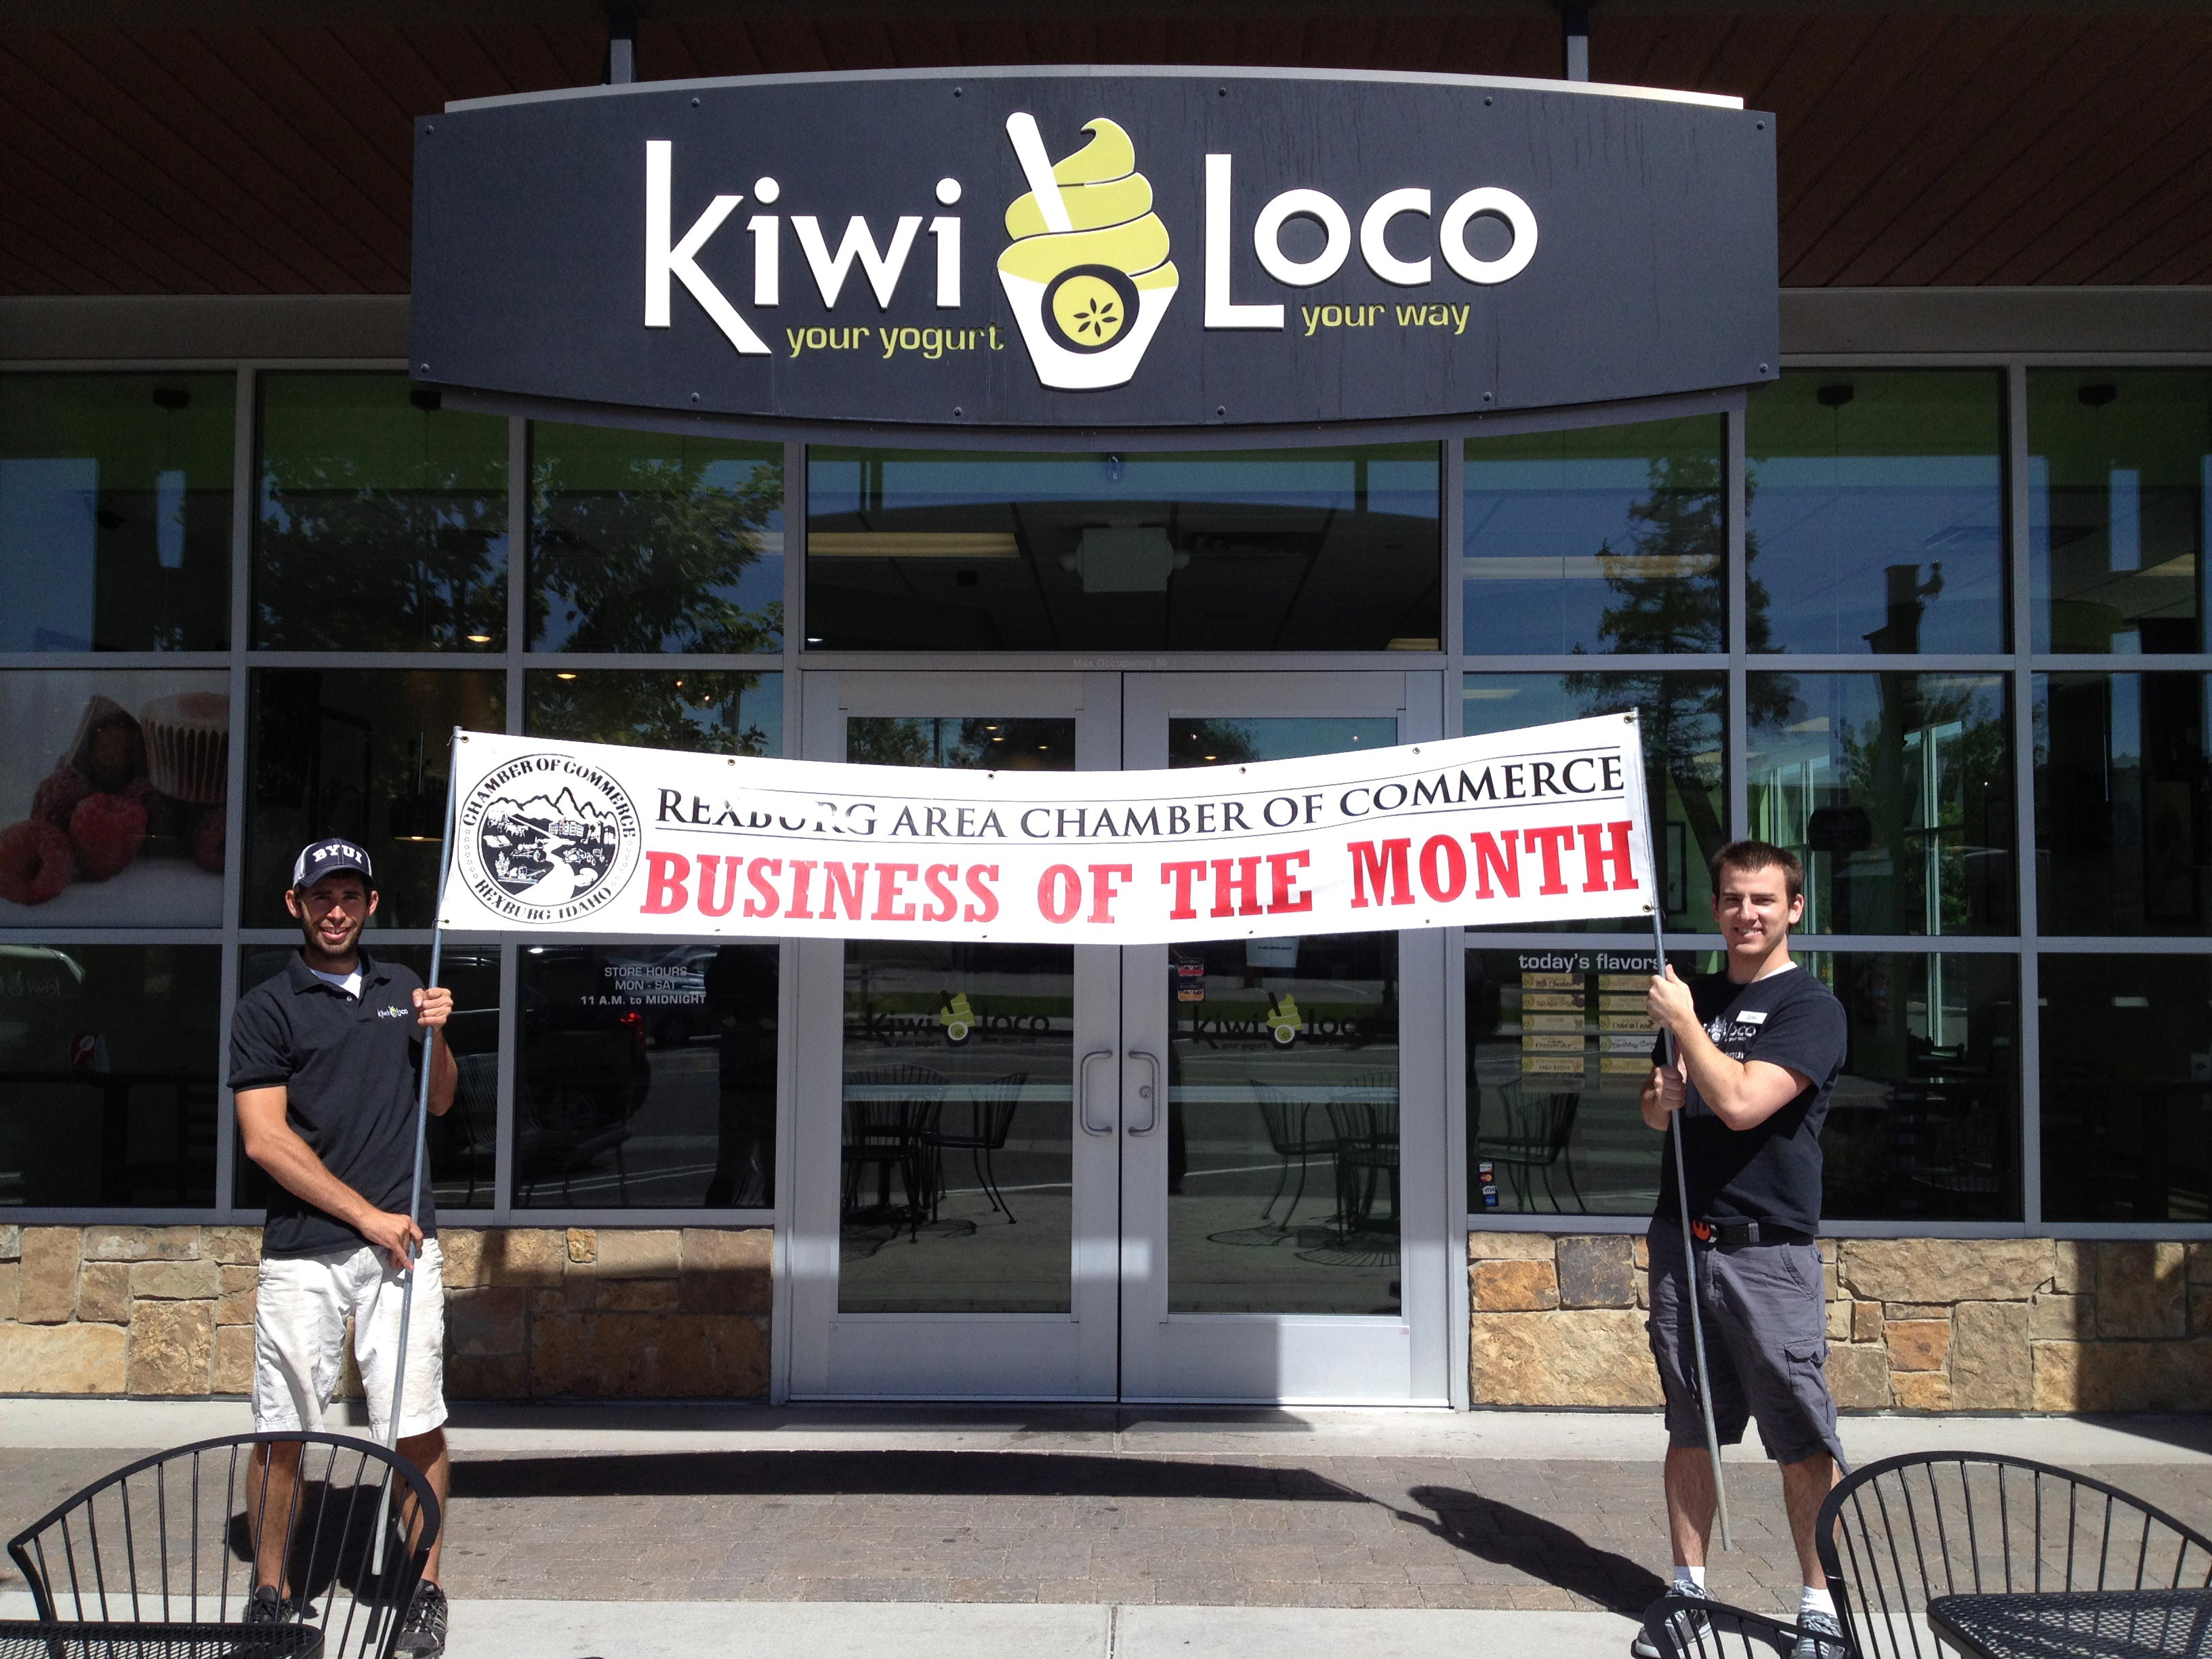 Business of the Month - Kiwi Loco